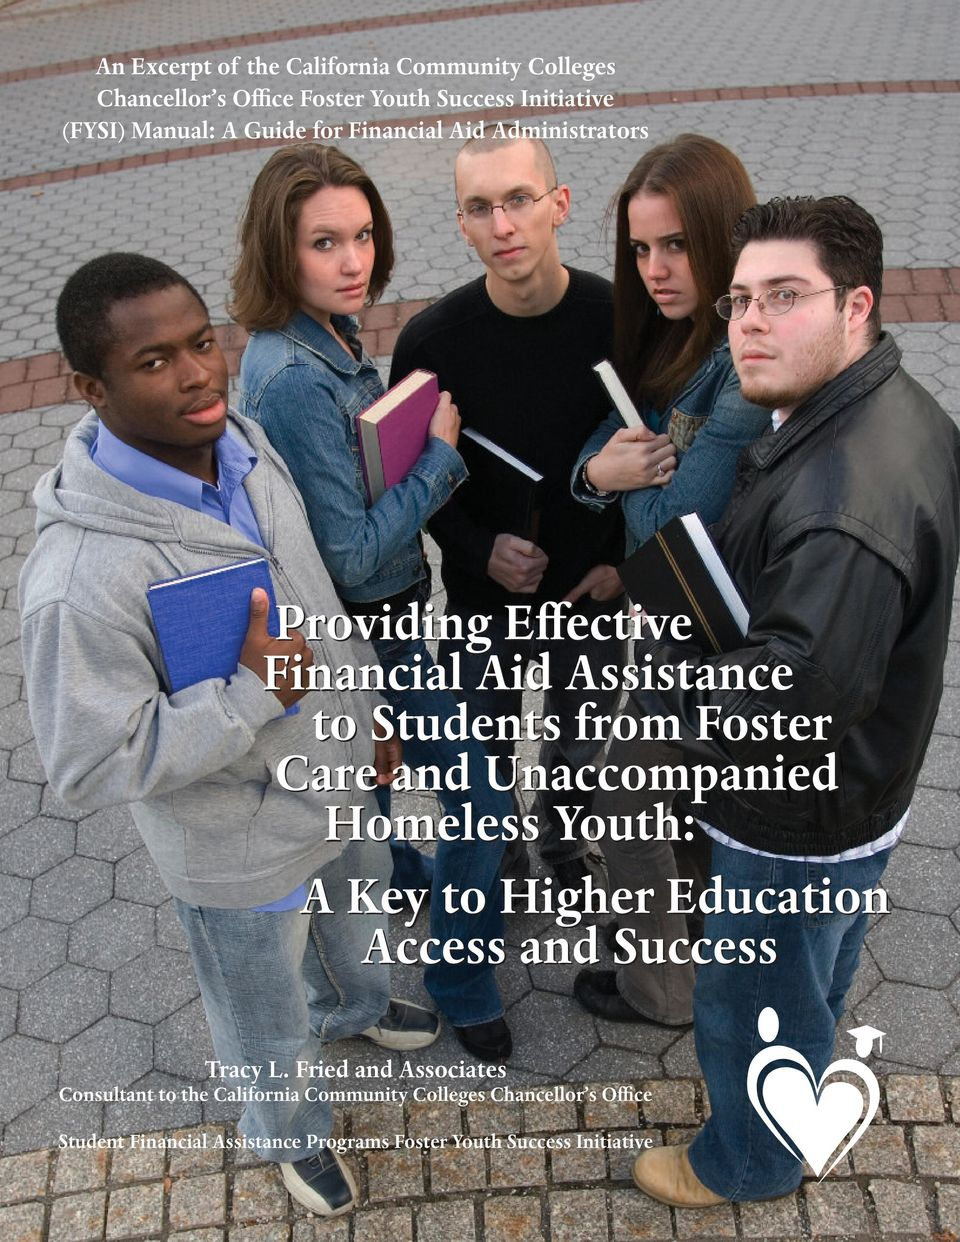 Unaccompanied Homeless Youth: A Key to Higher Education Access and Success Tracy L.